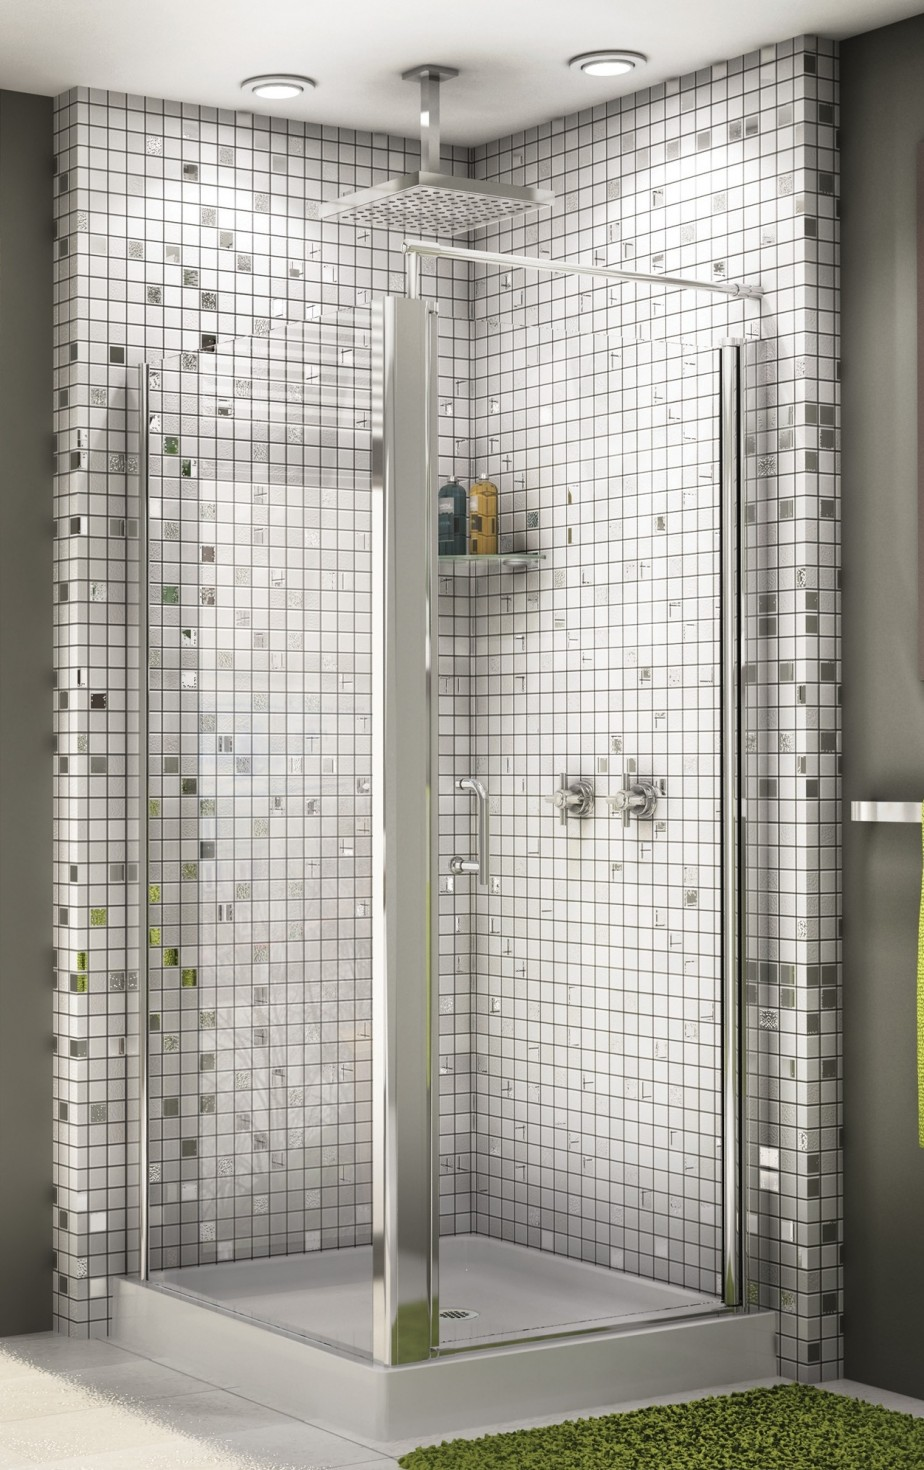 Glass Bathroom Tiles Ideas & Glass Bathroom Tiles Ideas. Subway Tile Bathroom Floor. 30 Great ... Pezcame.Com